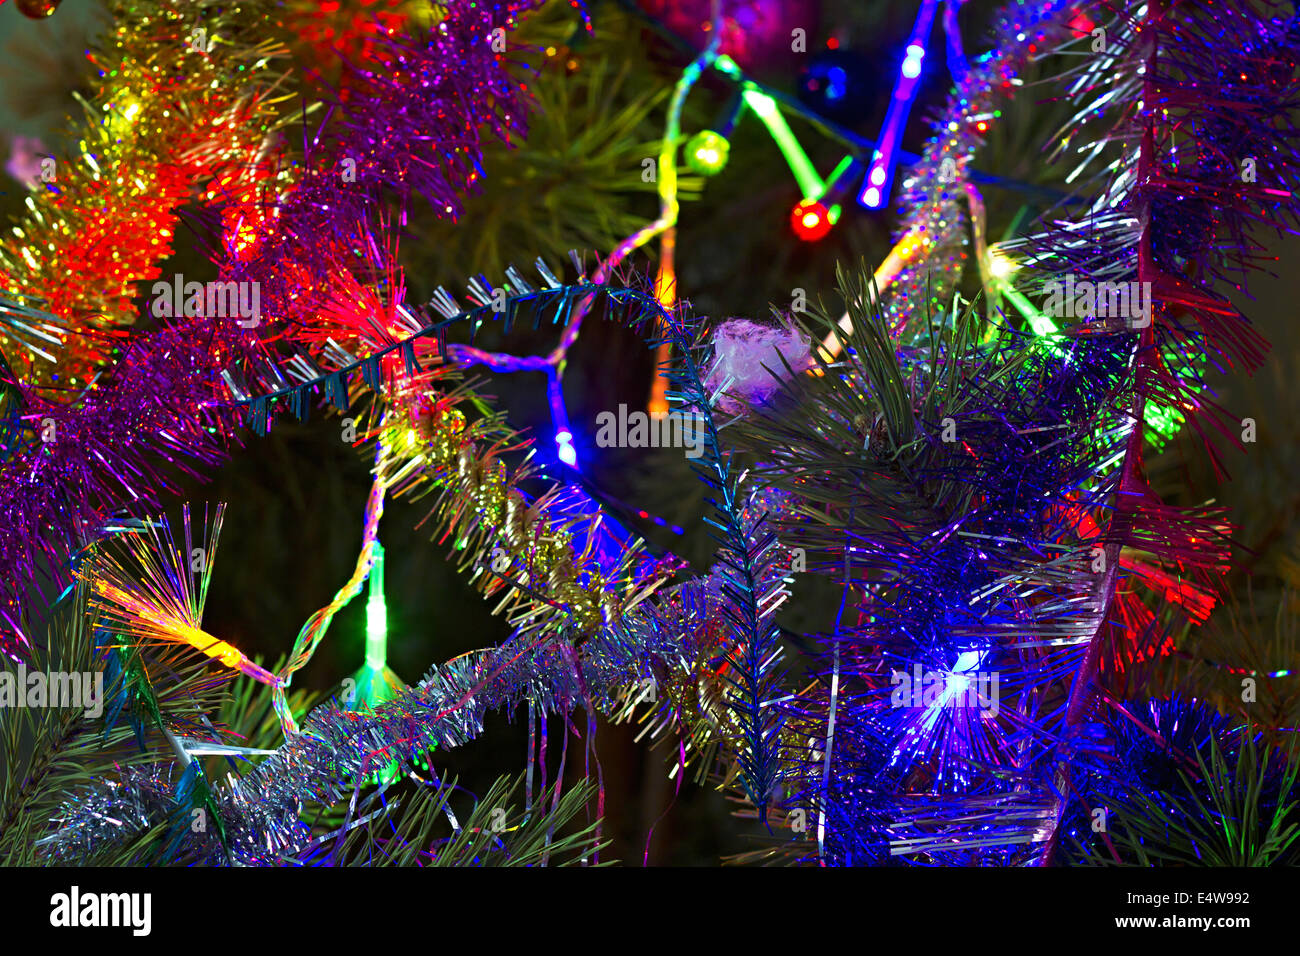 Christmas background of tinsel and garland - Stock Image